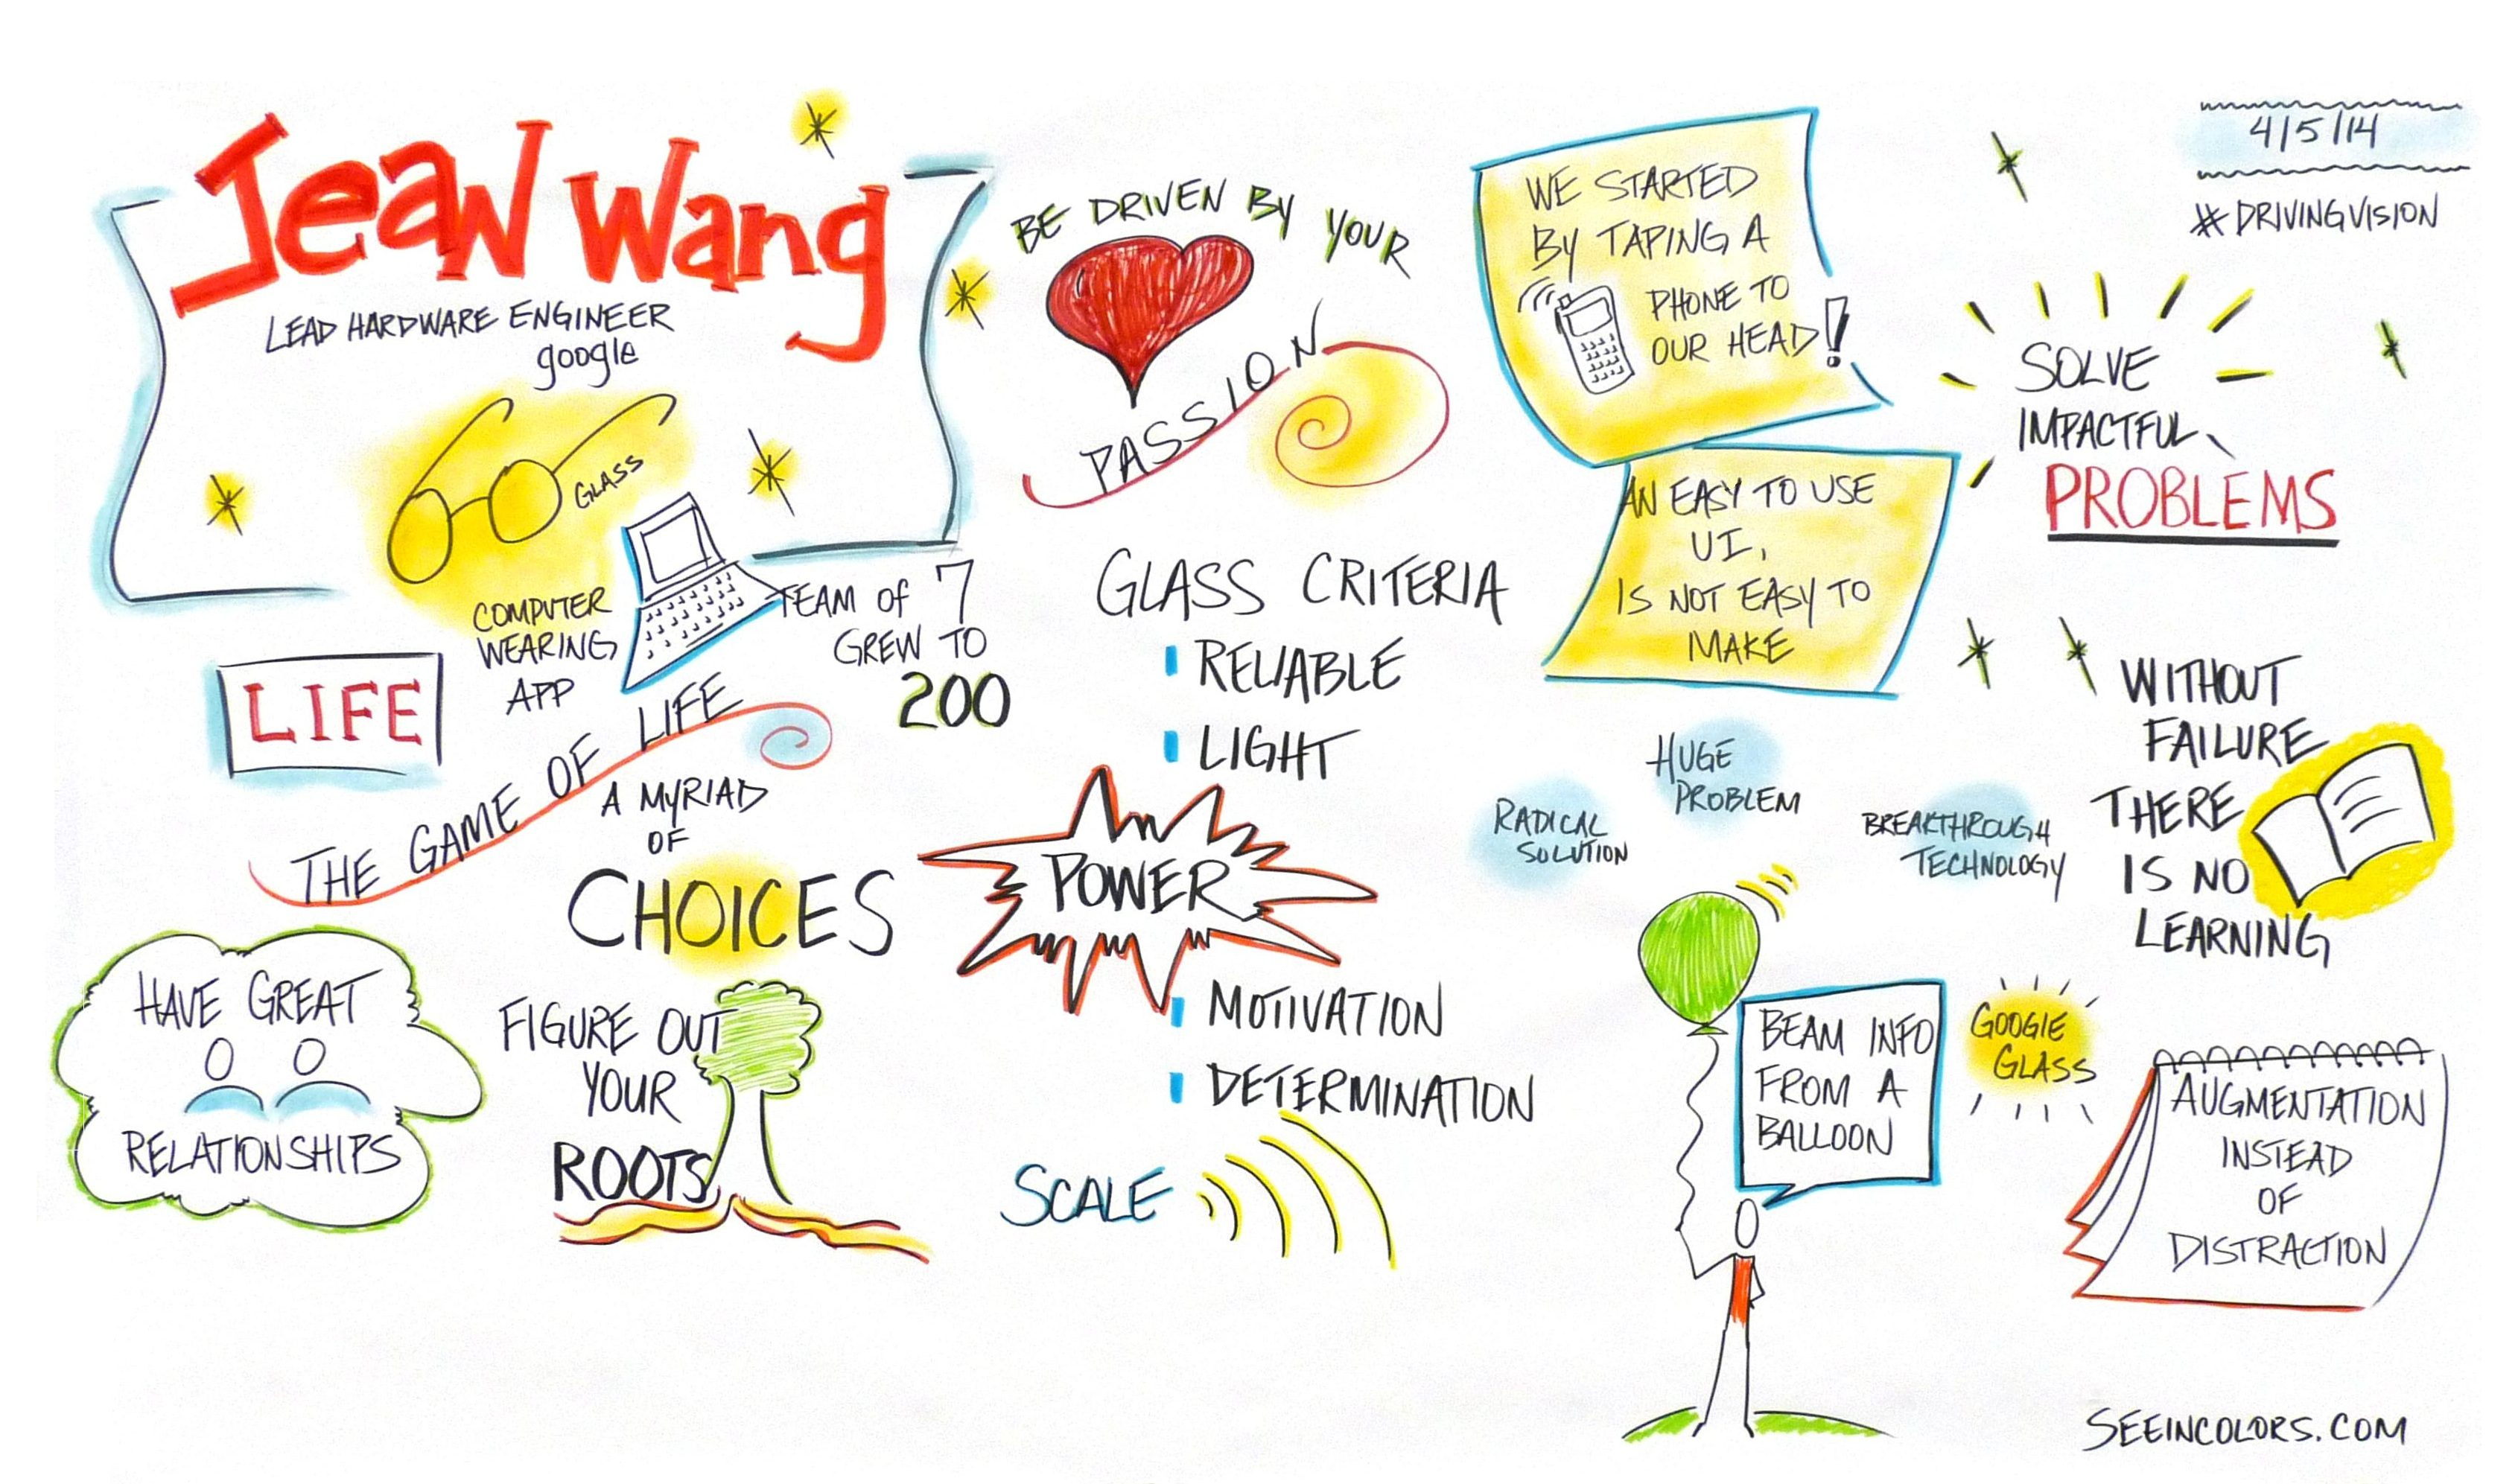 Jean Wang, Google Glass, Graphic Recording, #GWWIB, Washington DC